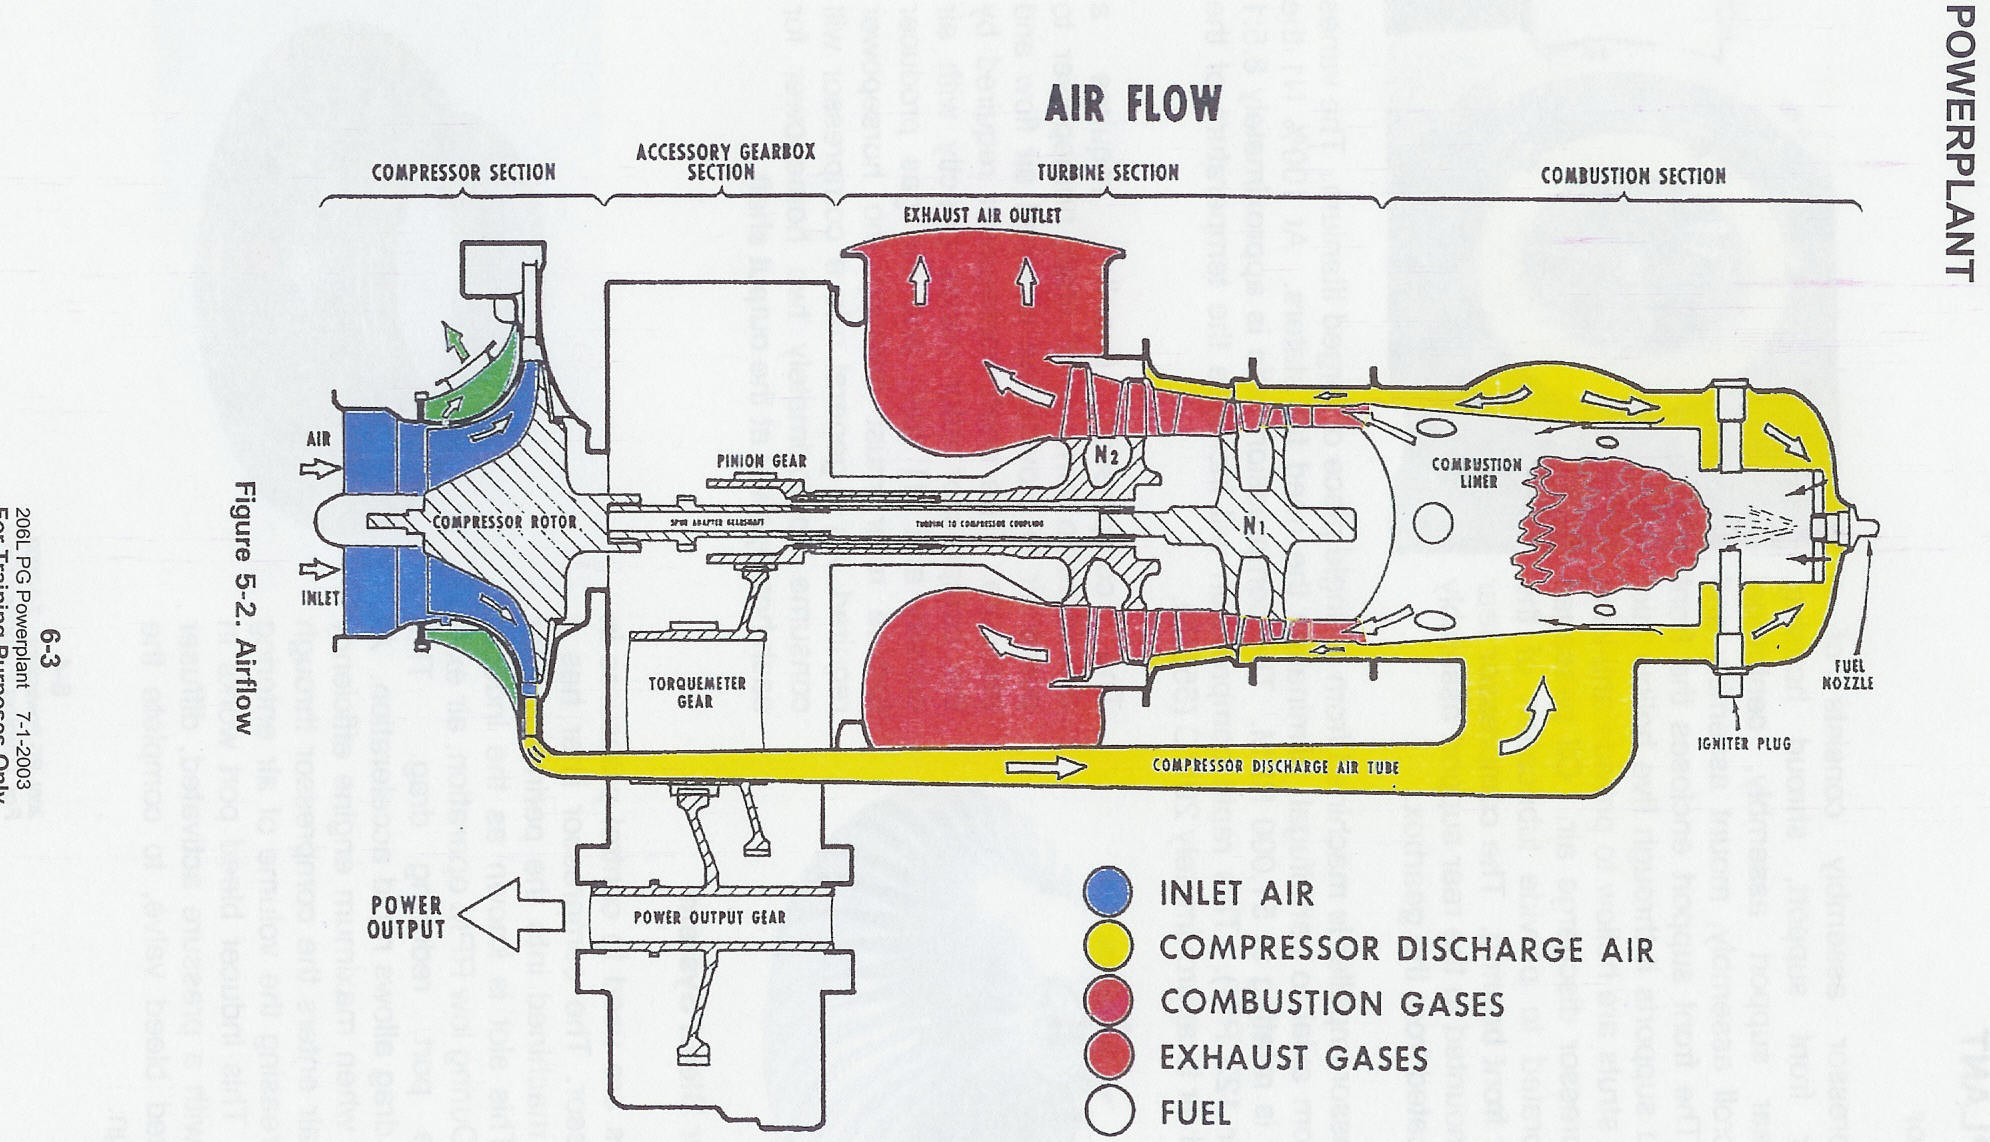 Helicopter Turbine Engine Diagram How Does A Gas Turbine Engine Work Win S Online Of Helicopter Turbine Engine Diagram